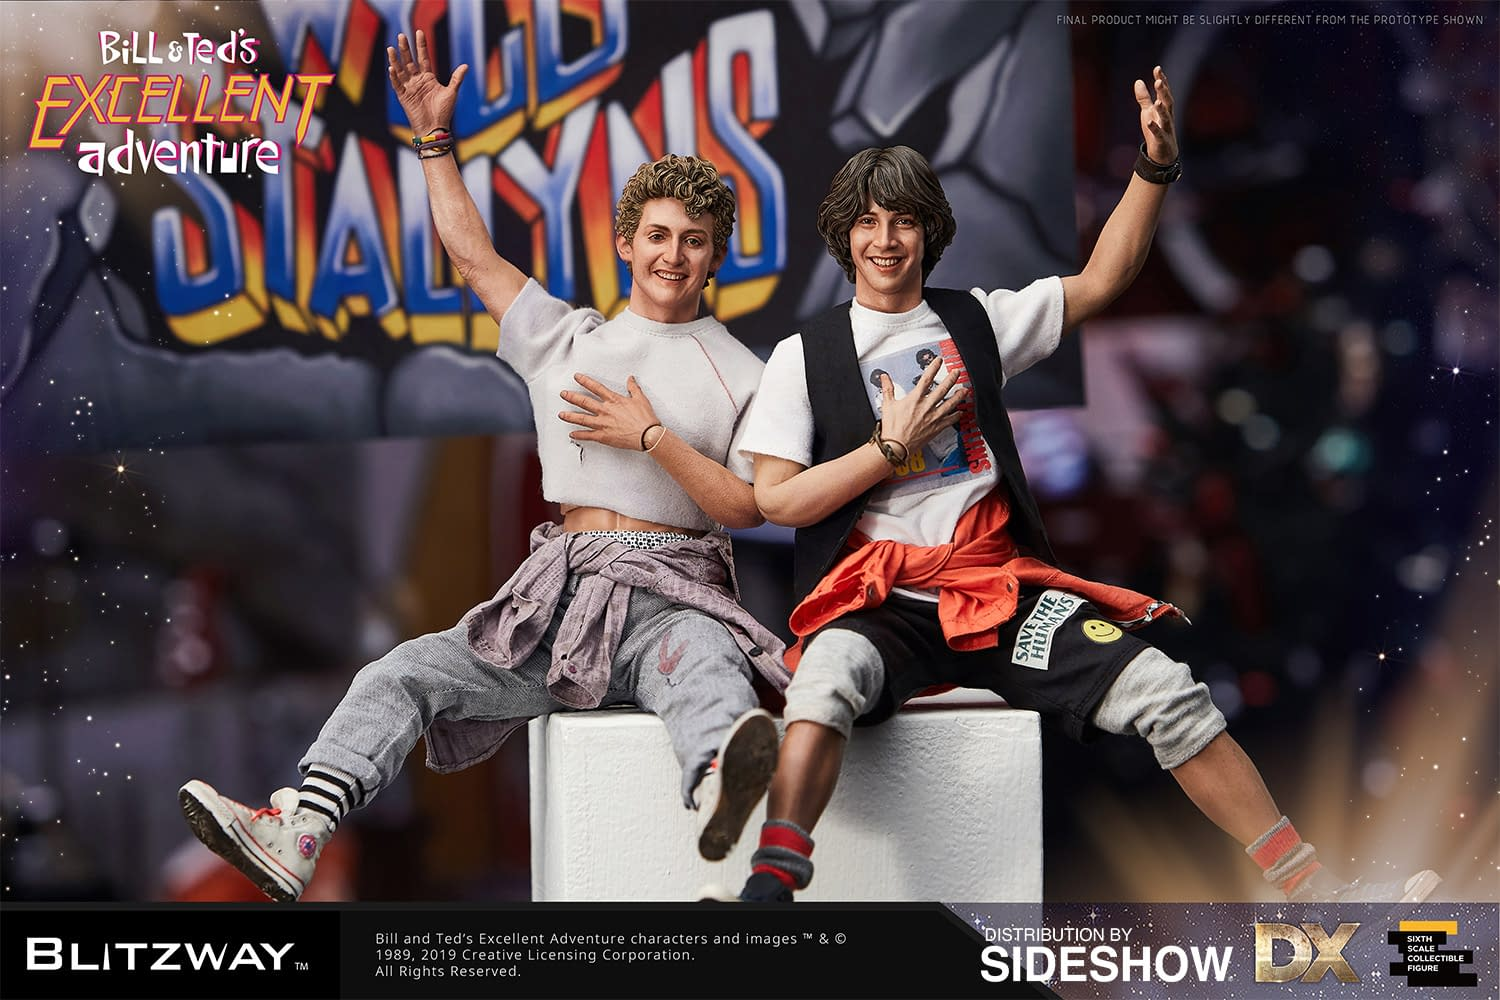 Return to the past with New Bill and Ted Figures